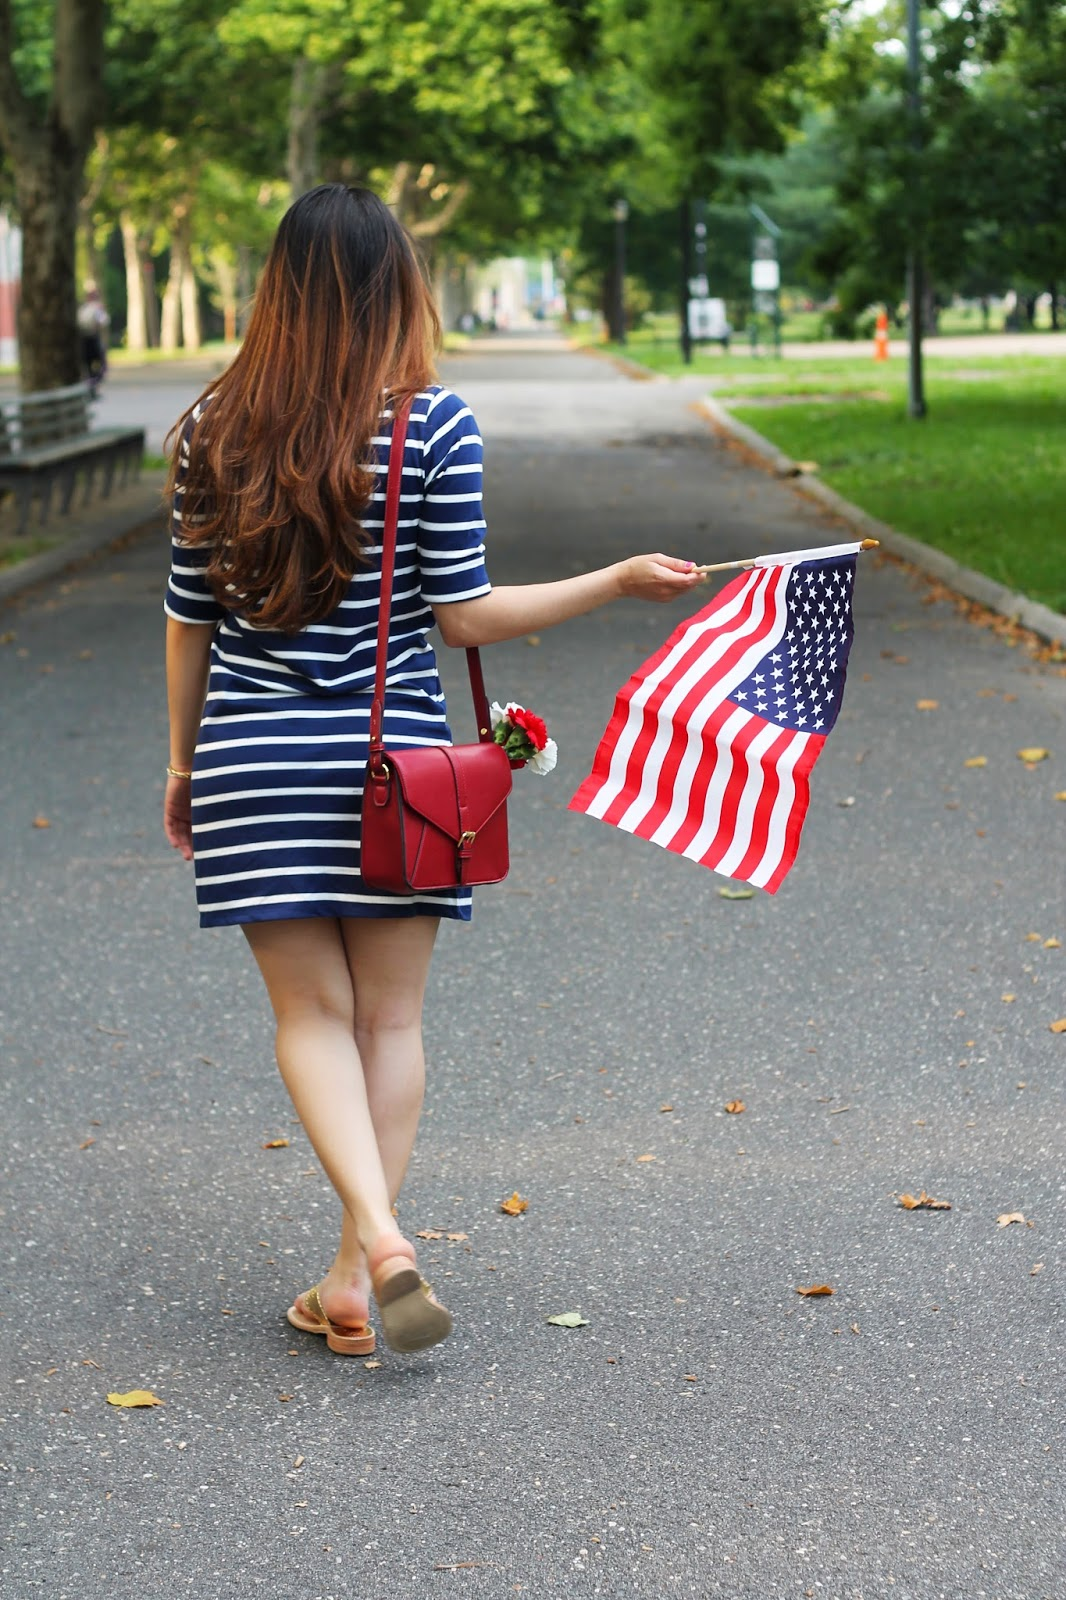 latina, girl, dominican, dominican blogger, fourth of july, 4th of july, july fourth, july 4th, american, patriotic, stars, stripes, red, white, blue, gold, holiday, summer, oldnavy, jack rogers, lovemyjacks, marshalls, fabfound, crew, hm, aldo, accessories, aldo accessories,fun, cool, fashion, blogger, petite, woman, teen, women, outfit, ootd, american flag, sandals, dress, navy blue dress with white stripes, bracelets, purse, new york, weekend, friday, tgif, niece, ny, new york city, style, inspo, park, july